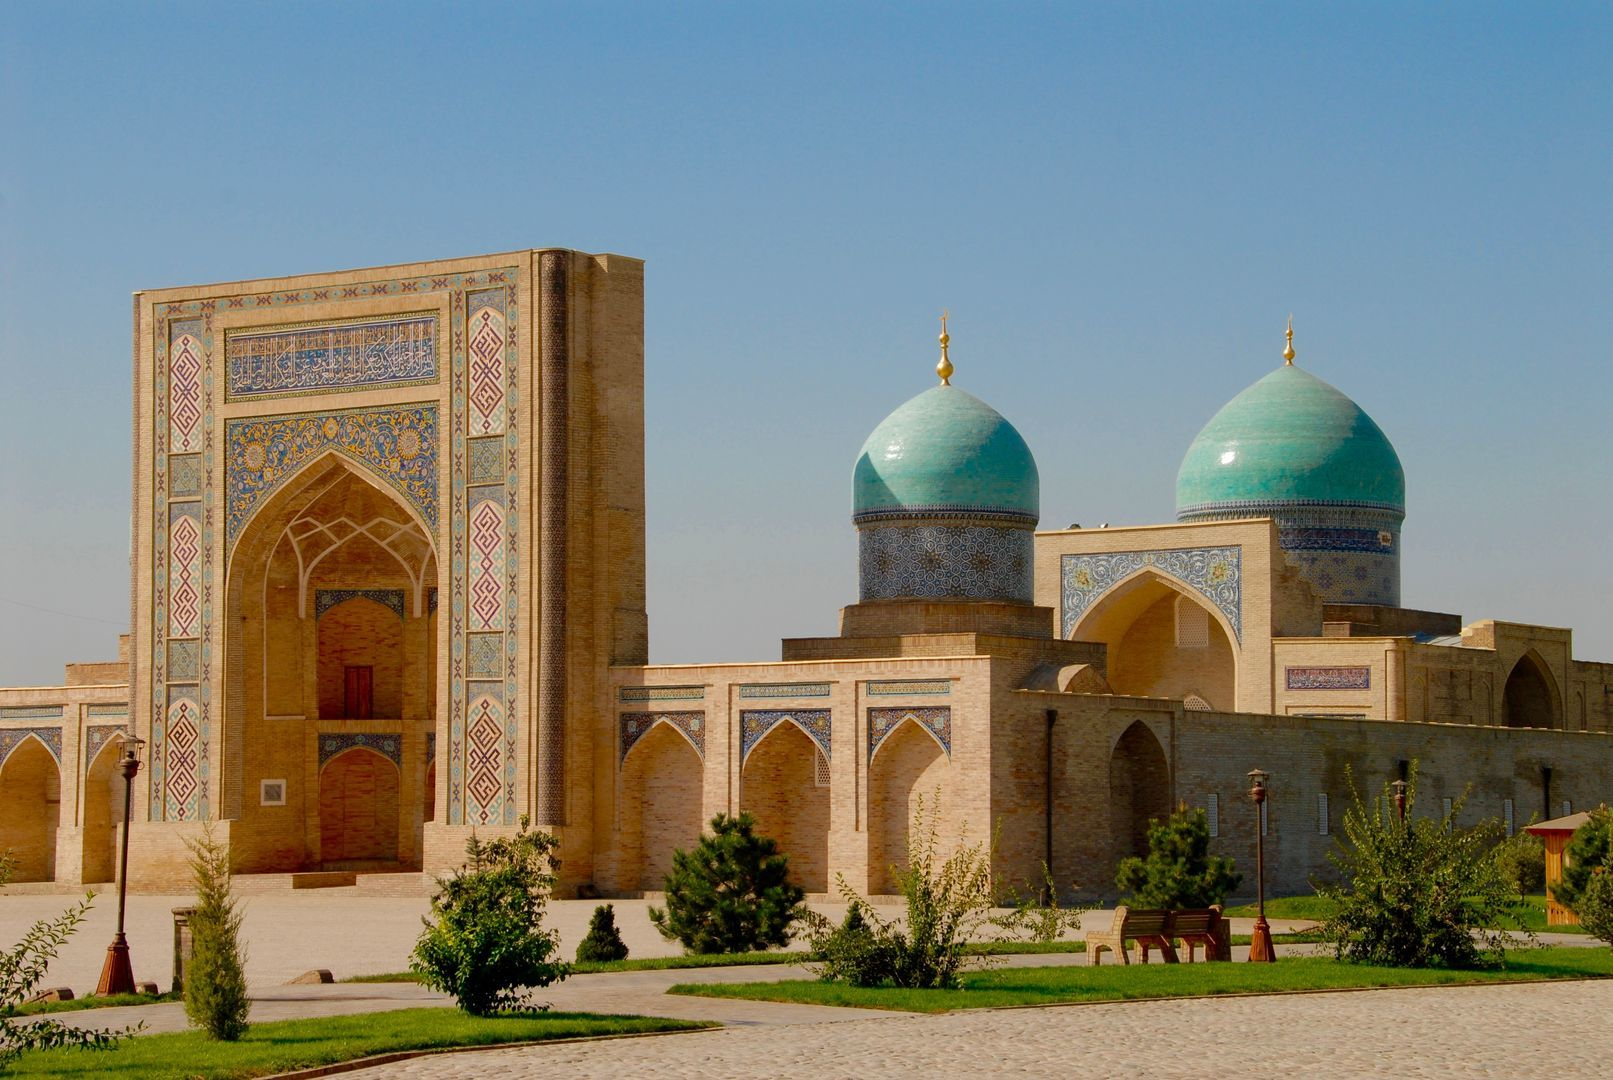 Tashkent mosque in Uzbekistan as seen during Best of Central Asia Tour